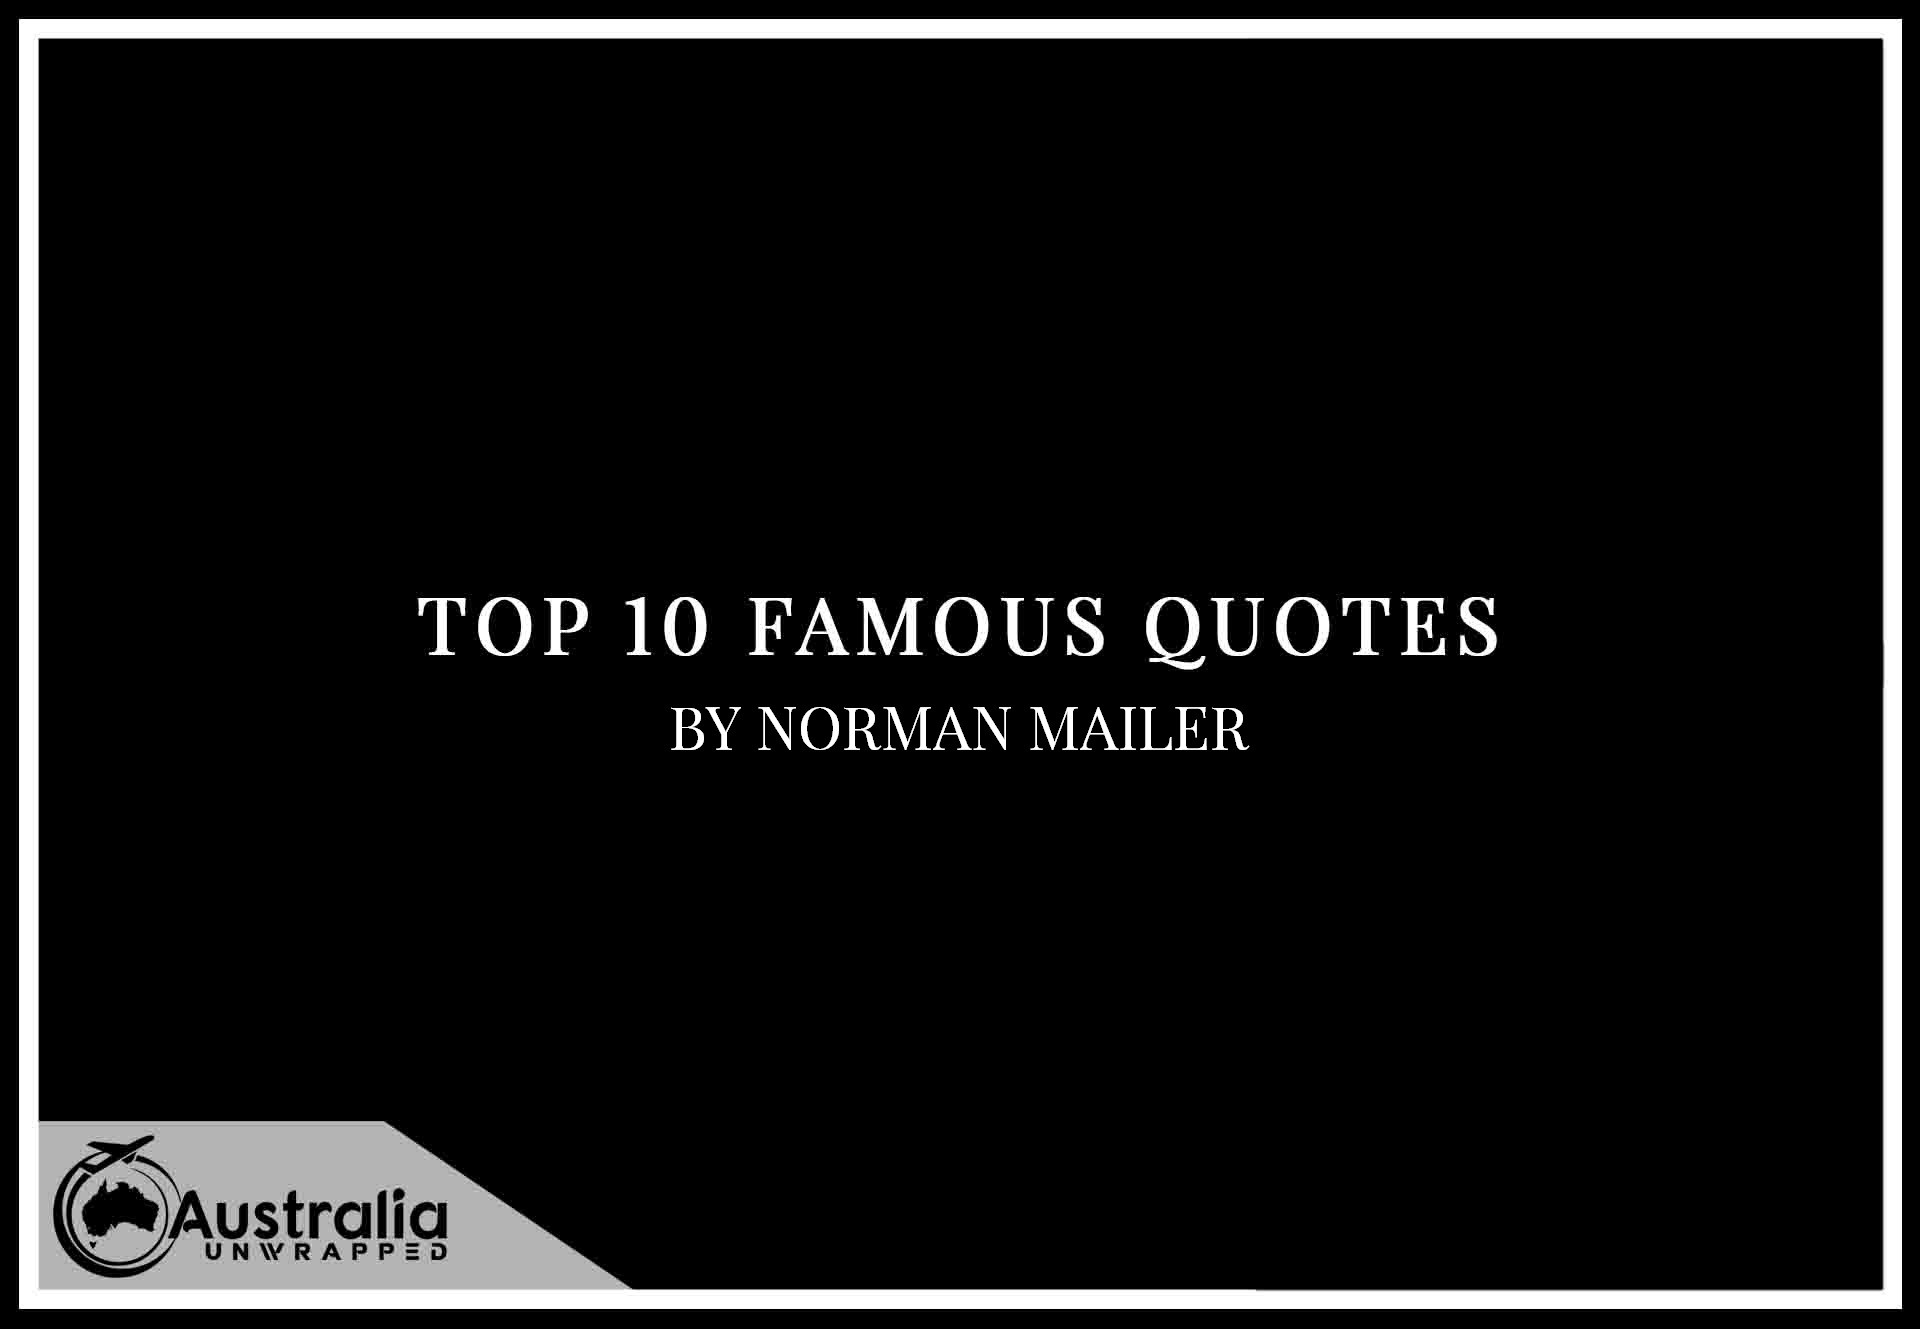 Top 10 Famous Quotes by Author Norman Mailer